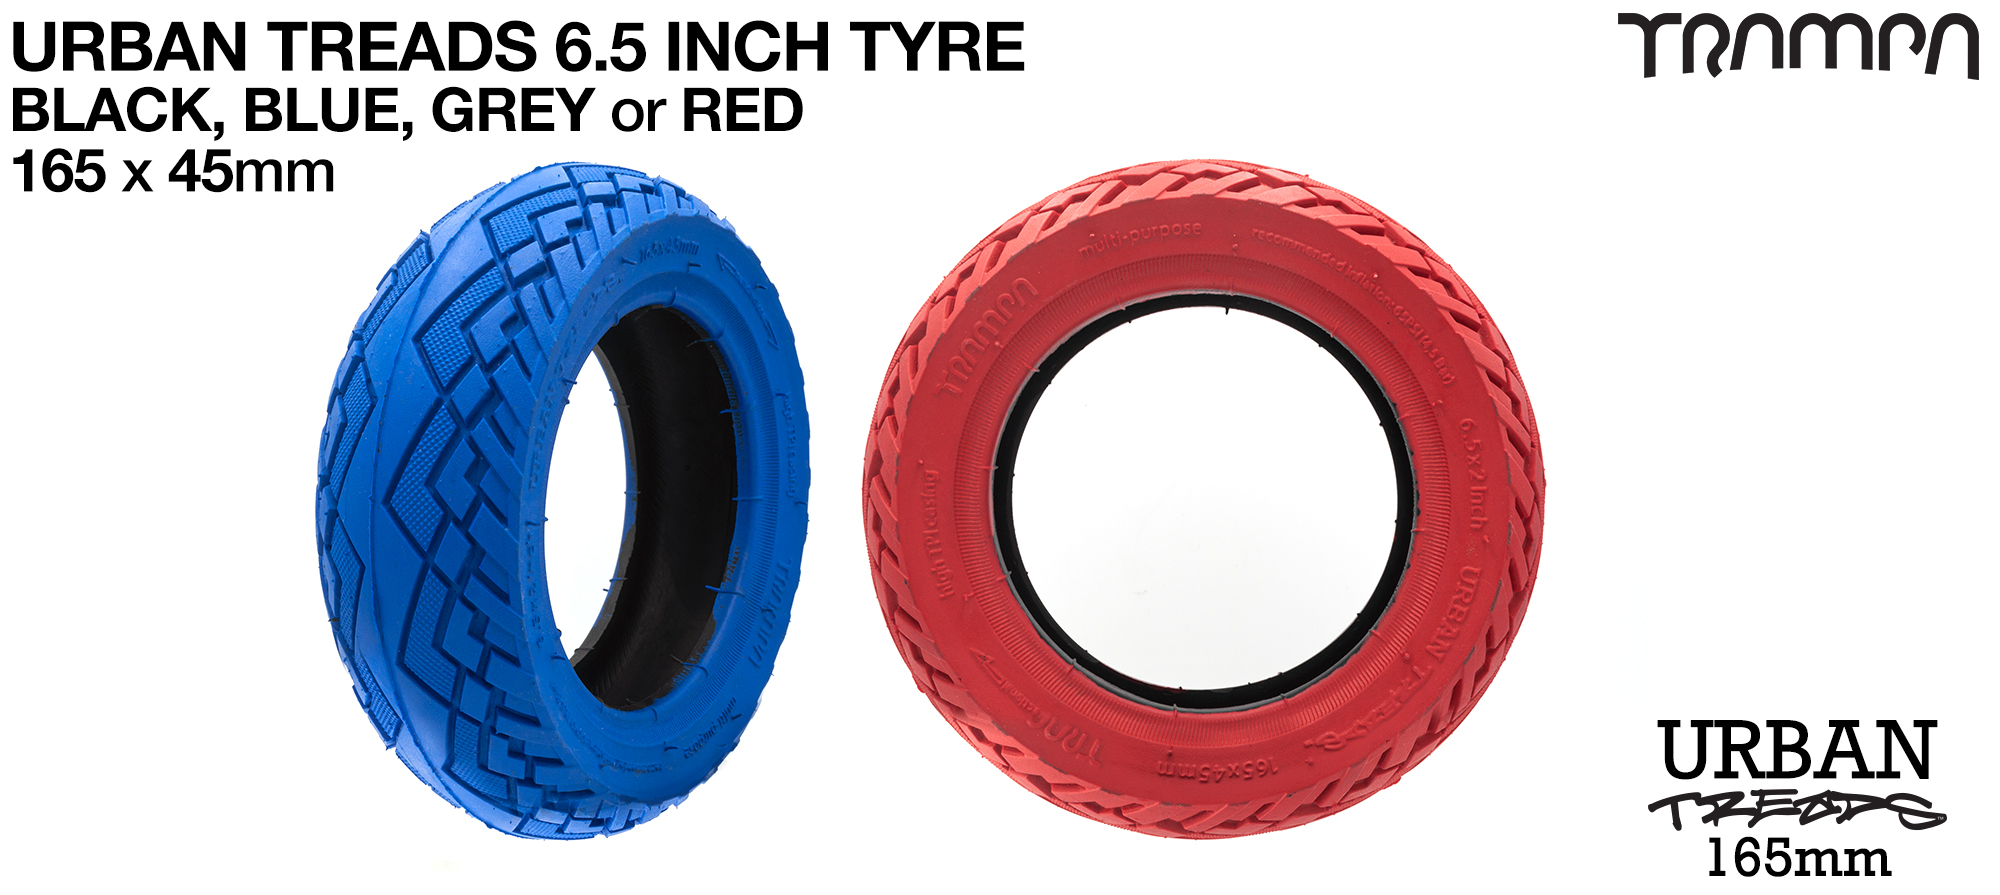 6.5 Inch URBAN Treads High Pressure High speed Tyres